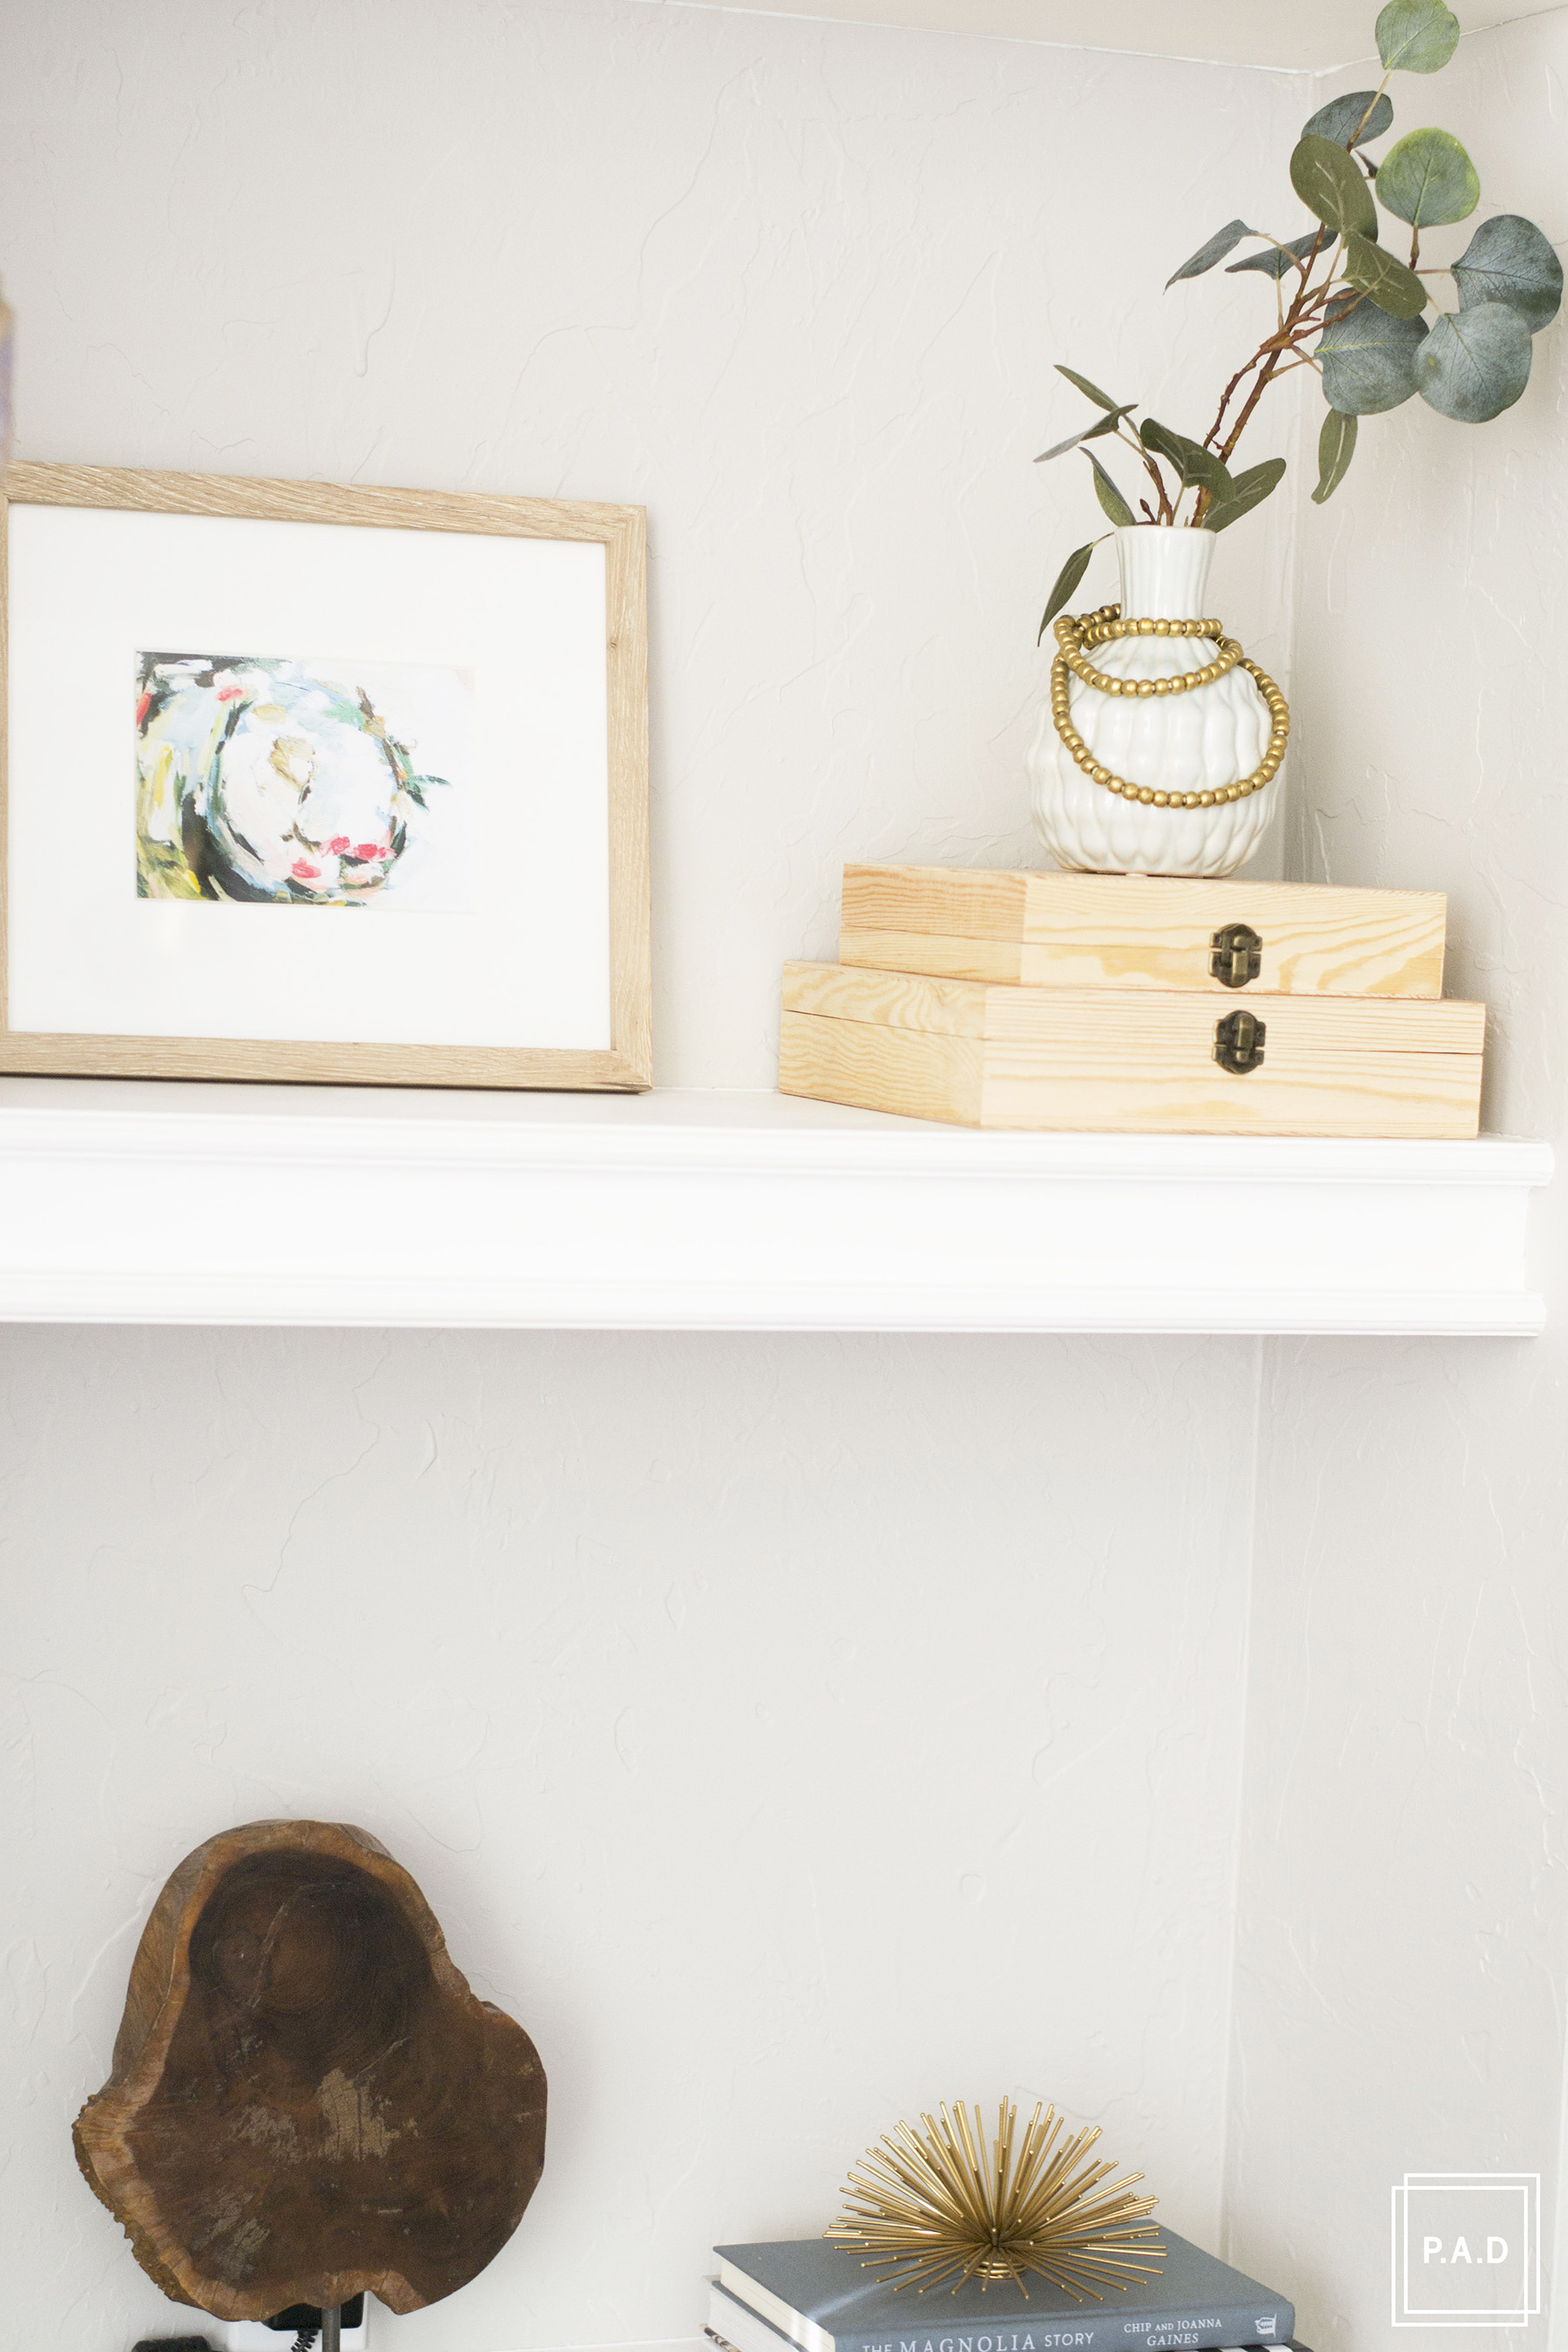 Project-allen-designs-how-to-decorate-like-a-pro-43-wm.2